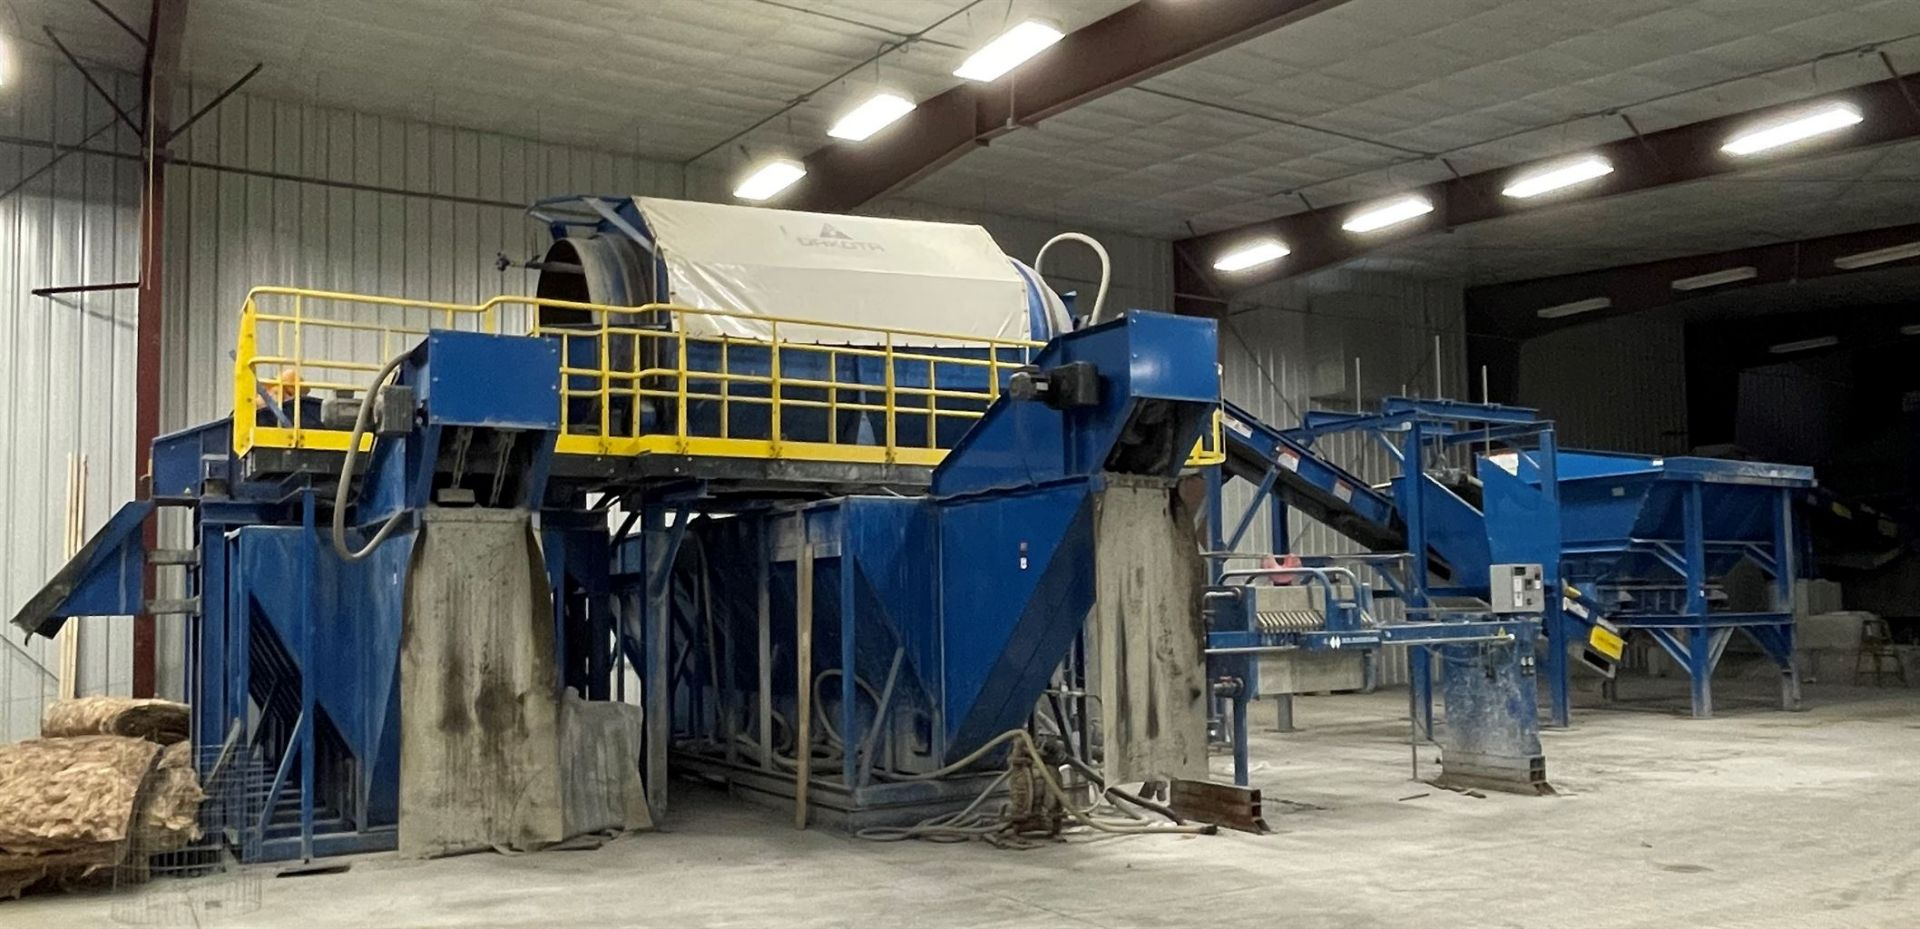 BULK LOT: 2015 VDL SYSTEMS Metal Recovery Washer Separation Line as a Complete System, Comprising - Image 2 of 14